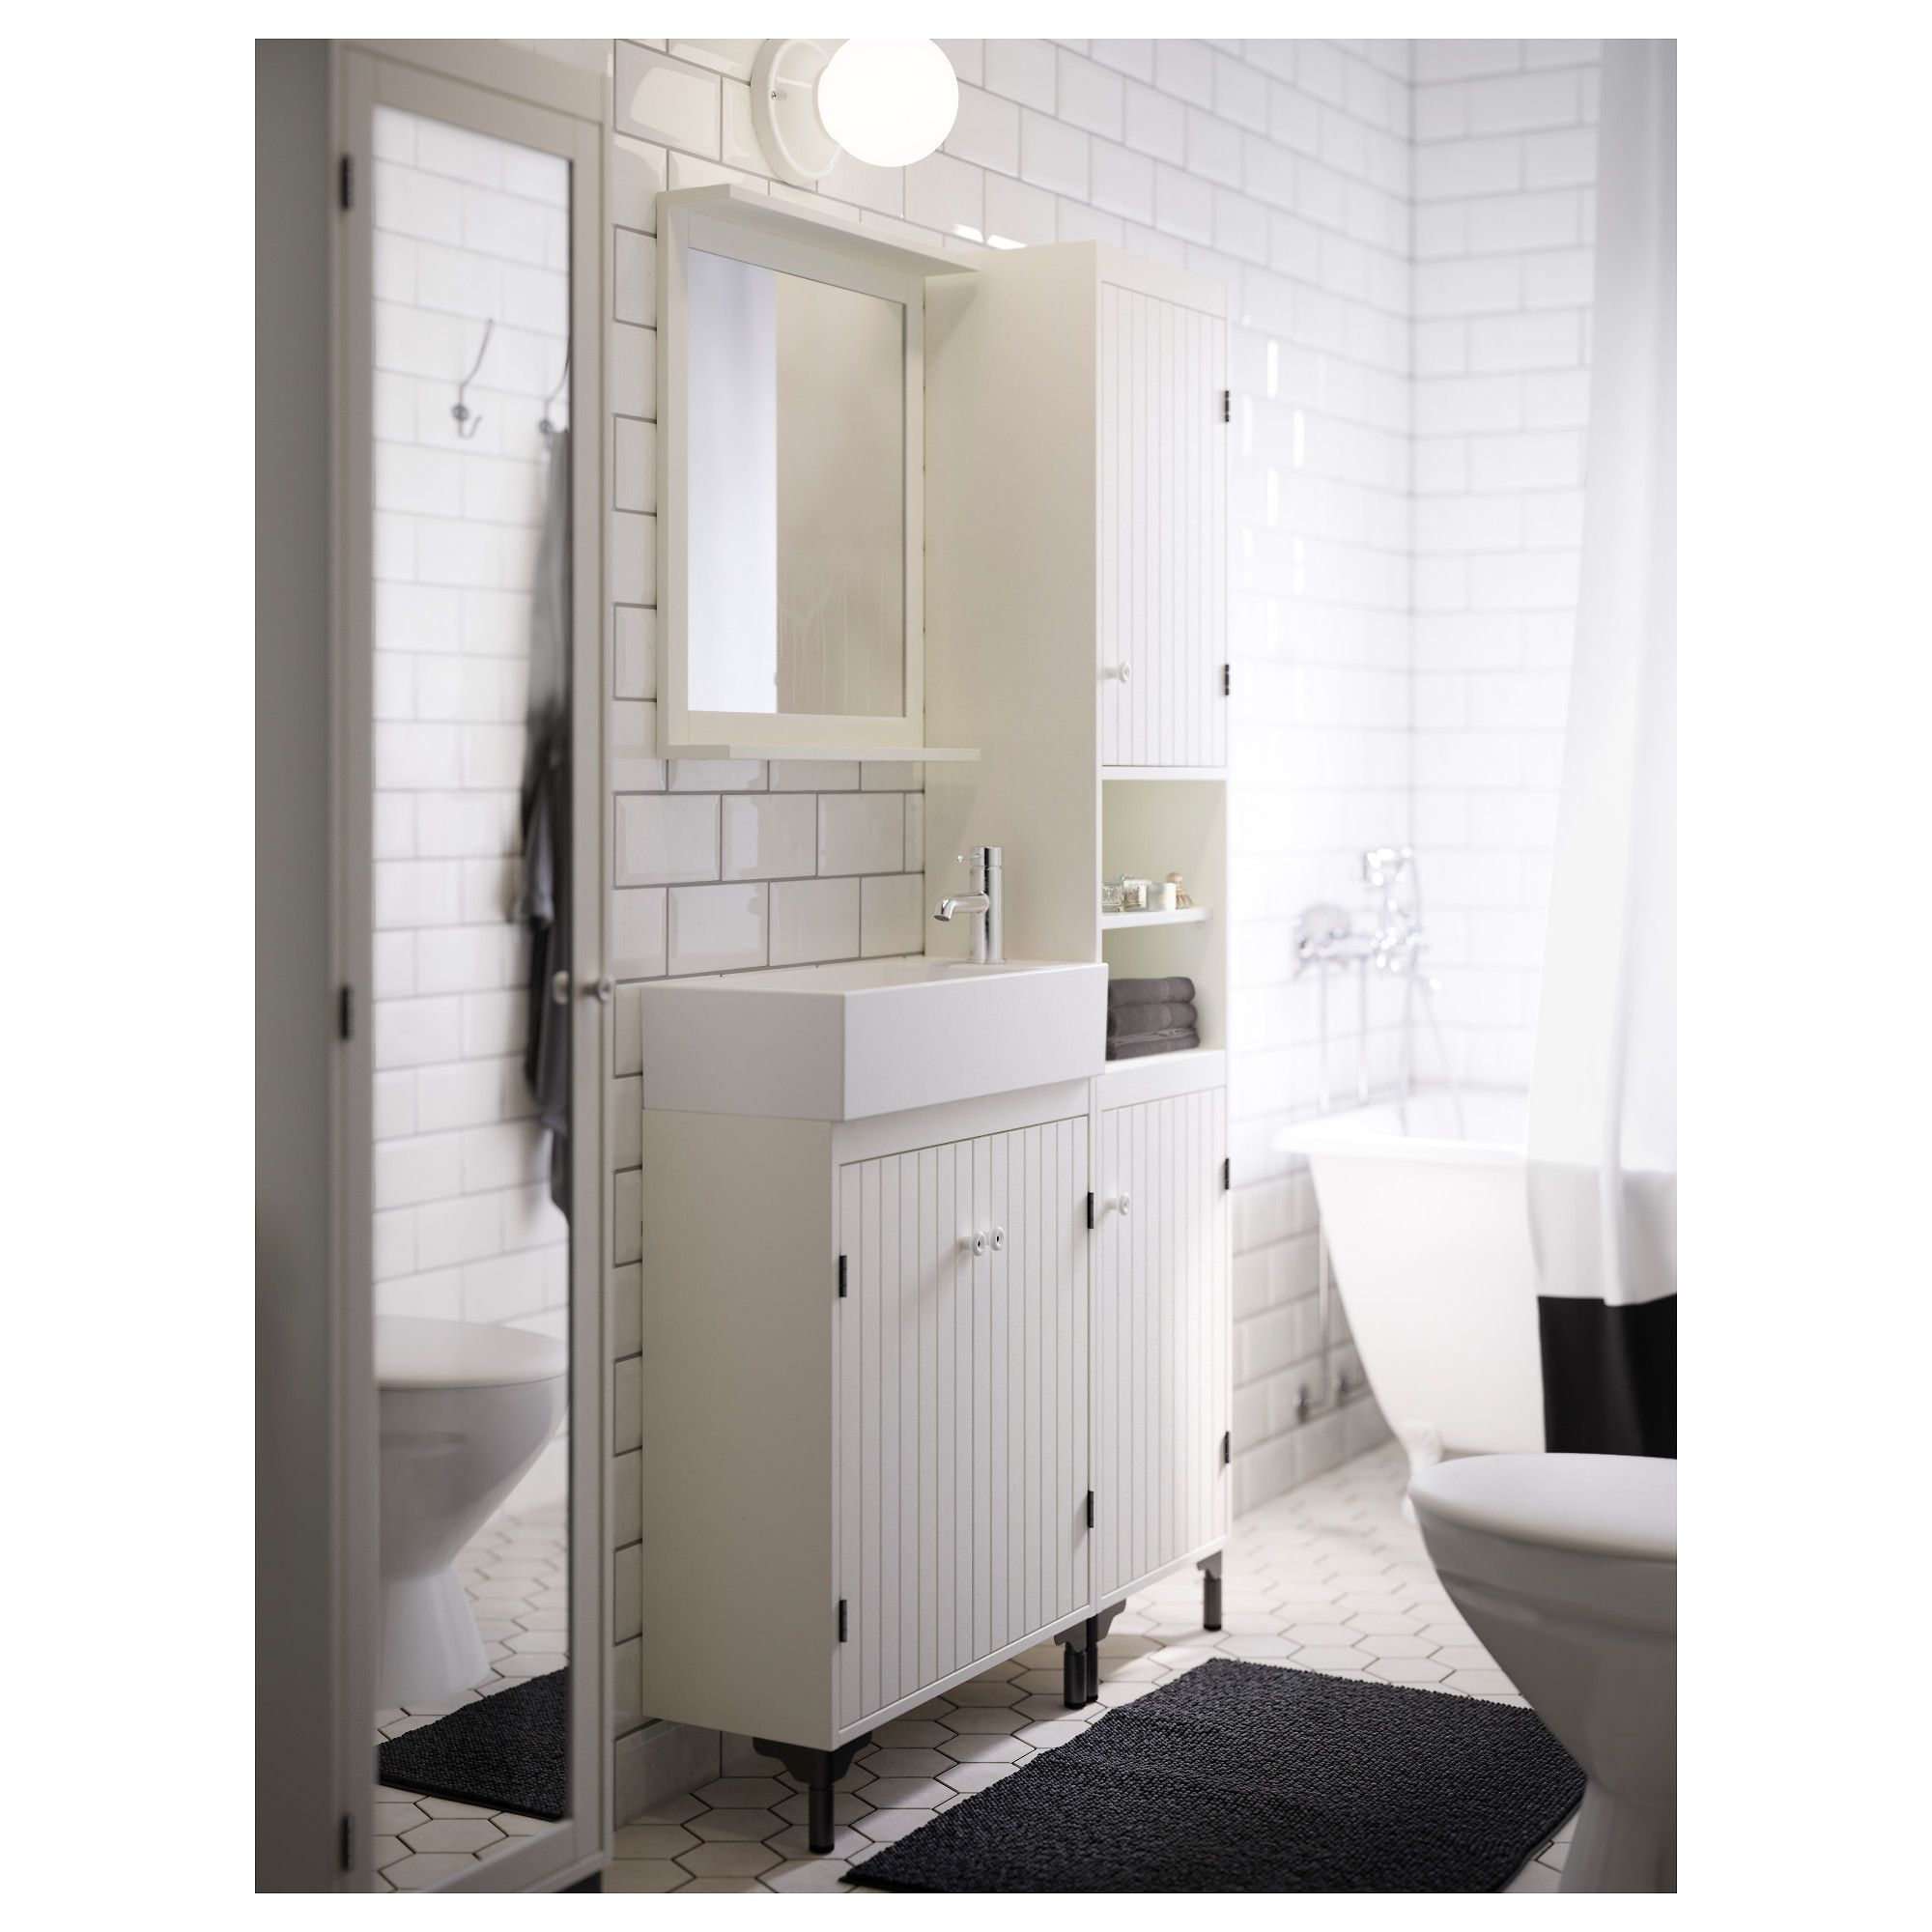 SILVERÅN High cabinet with 2 doors, white | Pinterest | Sinks, Doors ...